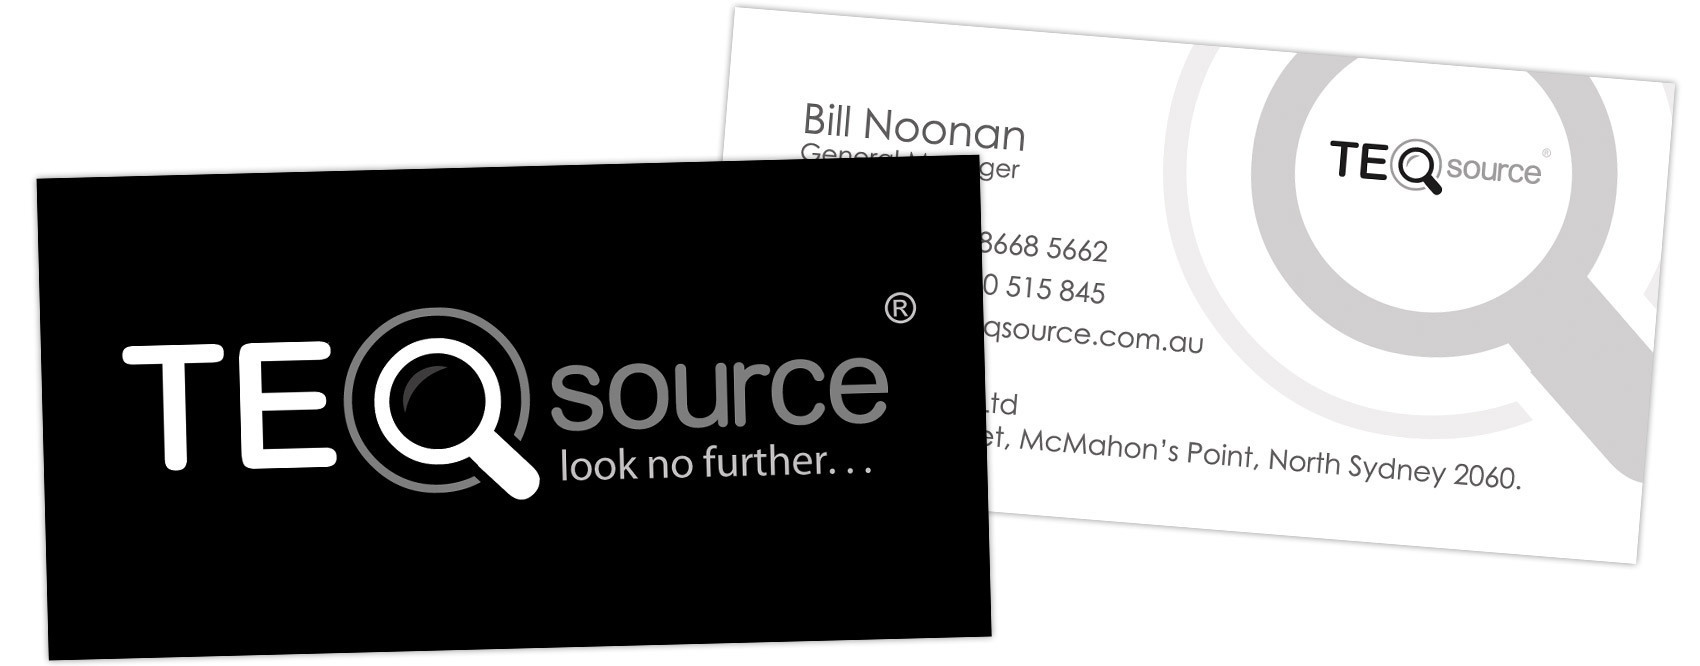 Business cards printing cheap card printing sutherland shire got a question contact us now on 02 9146 6480 reheart Choice Image